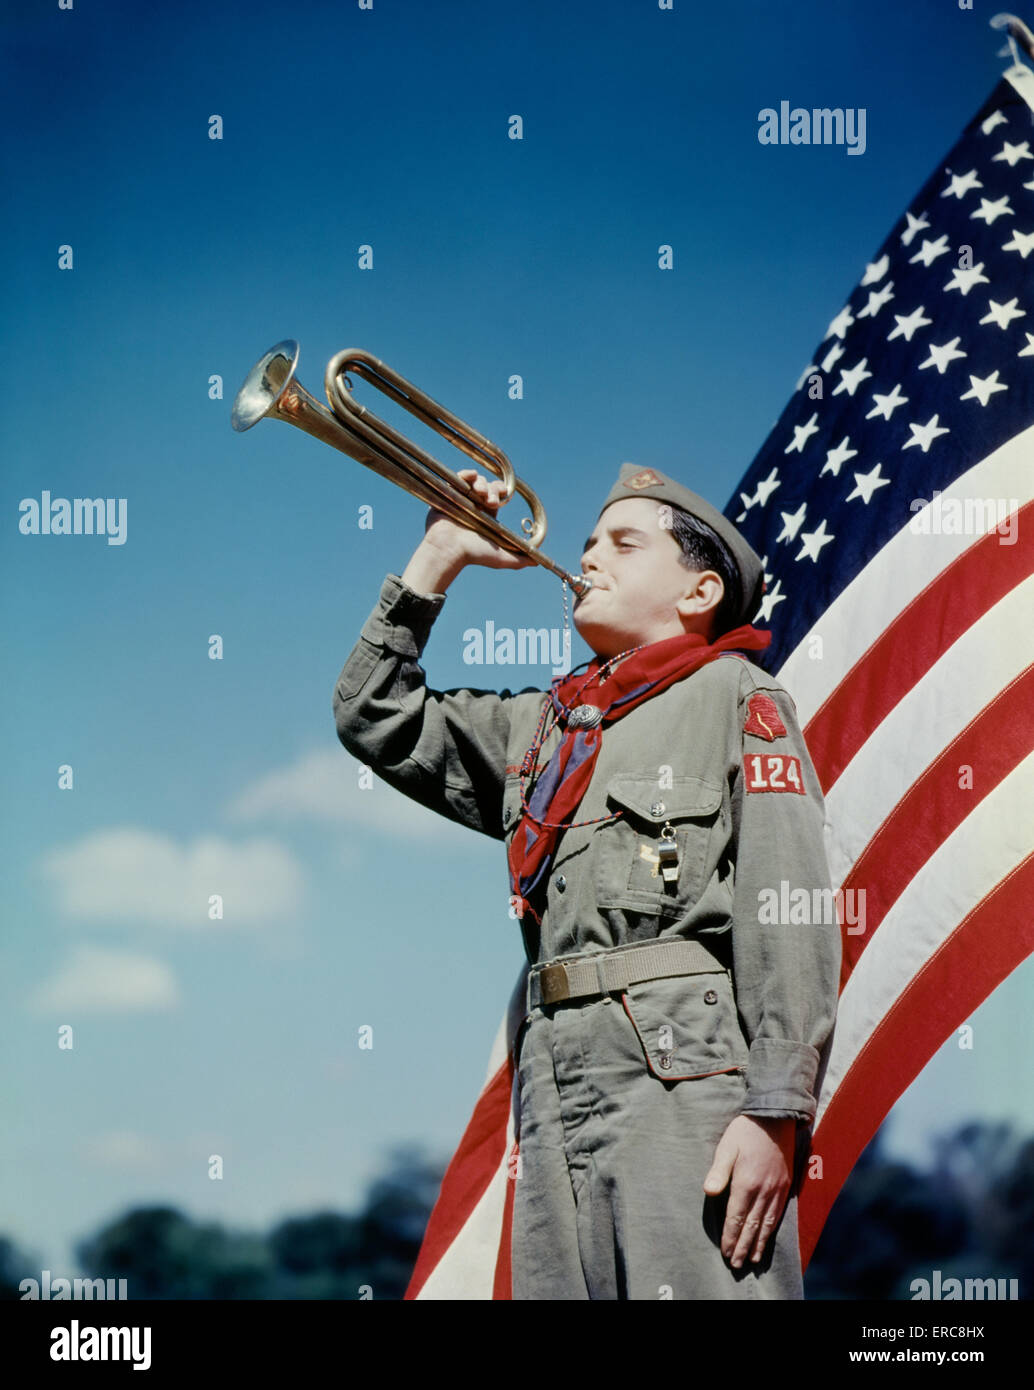 1950s BOY SCOUT BLOWING BUGLE IN FRONT OF 48 STAR AMERICAN FLAG - Stock Image